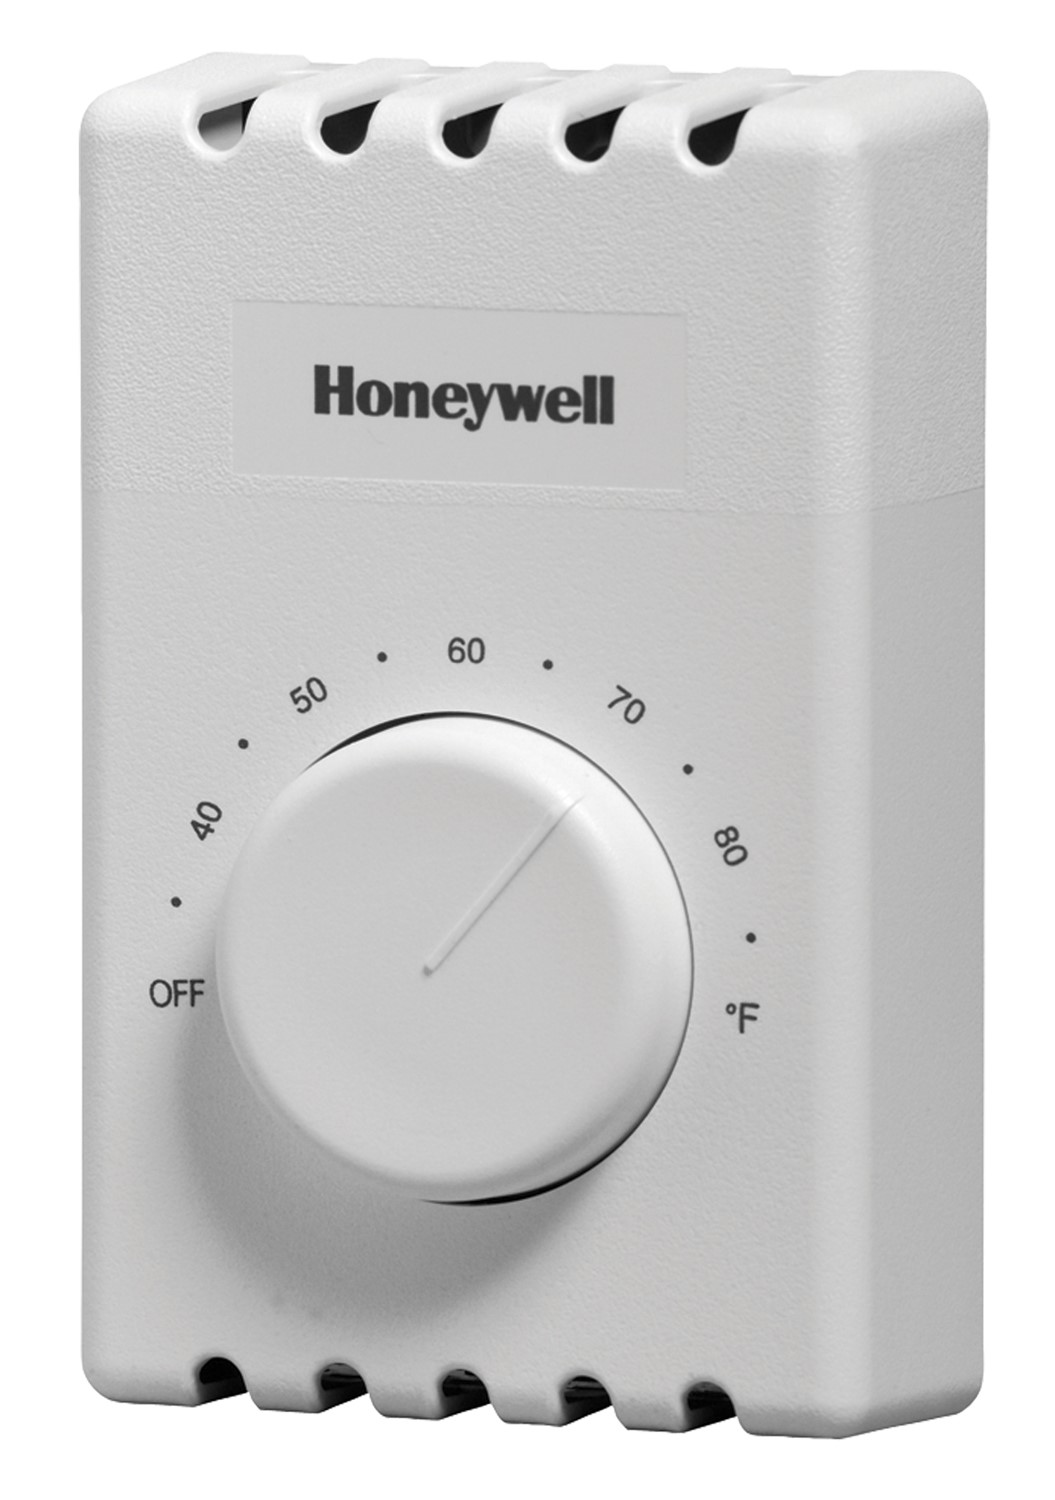 Honeywell Digital Thermostat Wiring Ac Electrical Diagrams Dometic And Suburban Digitial Install Modmyrv Ace Heating Circuit Rv